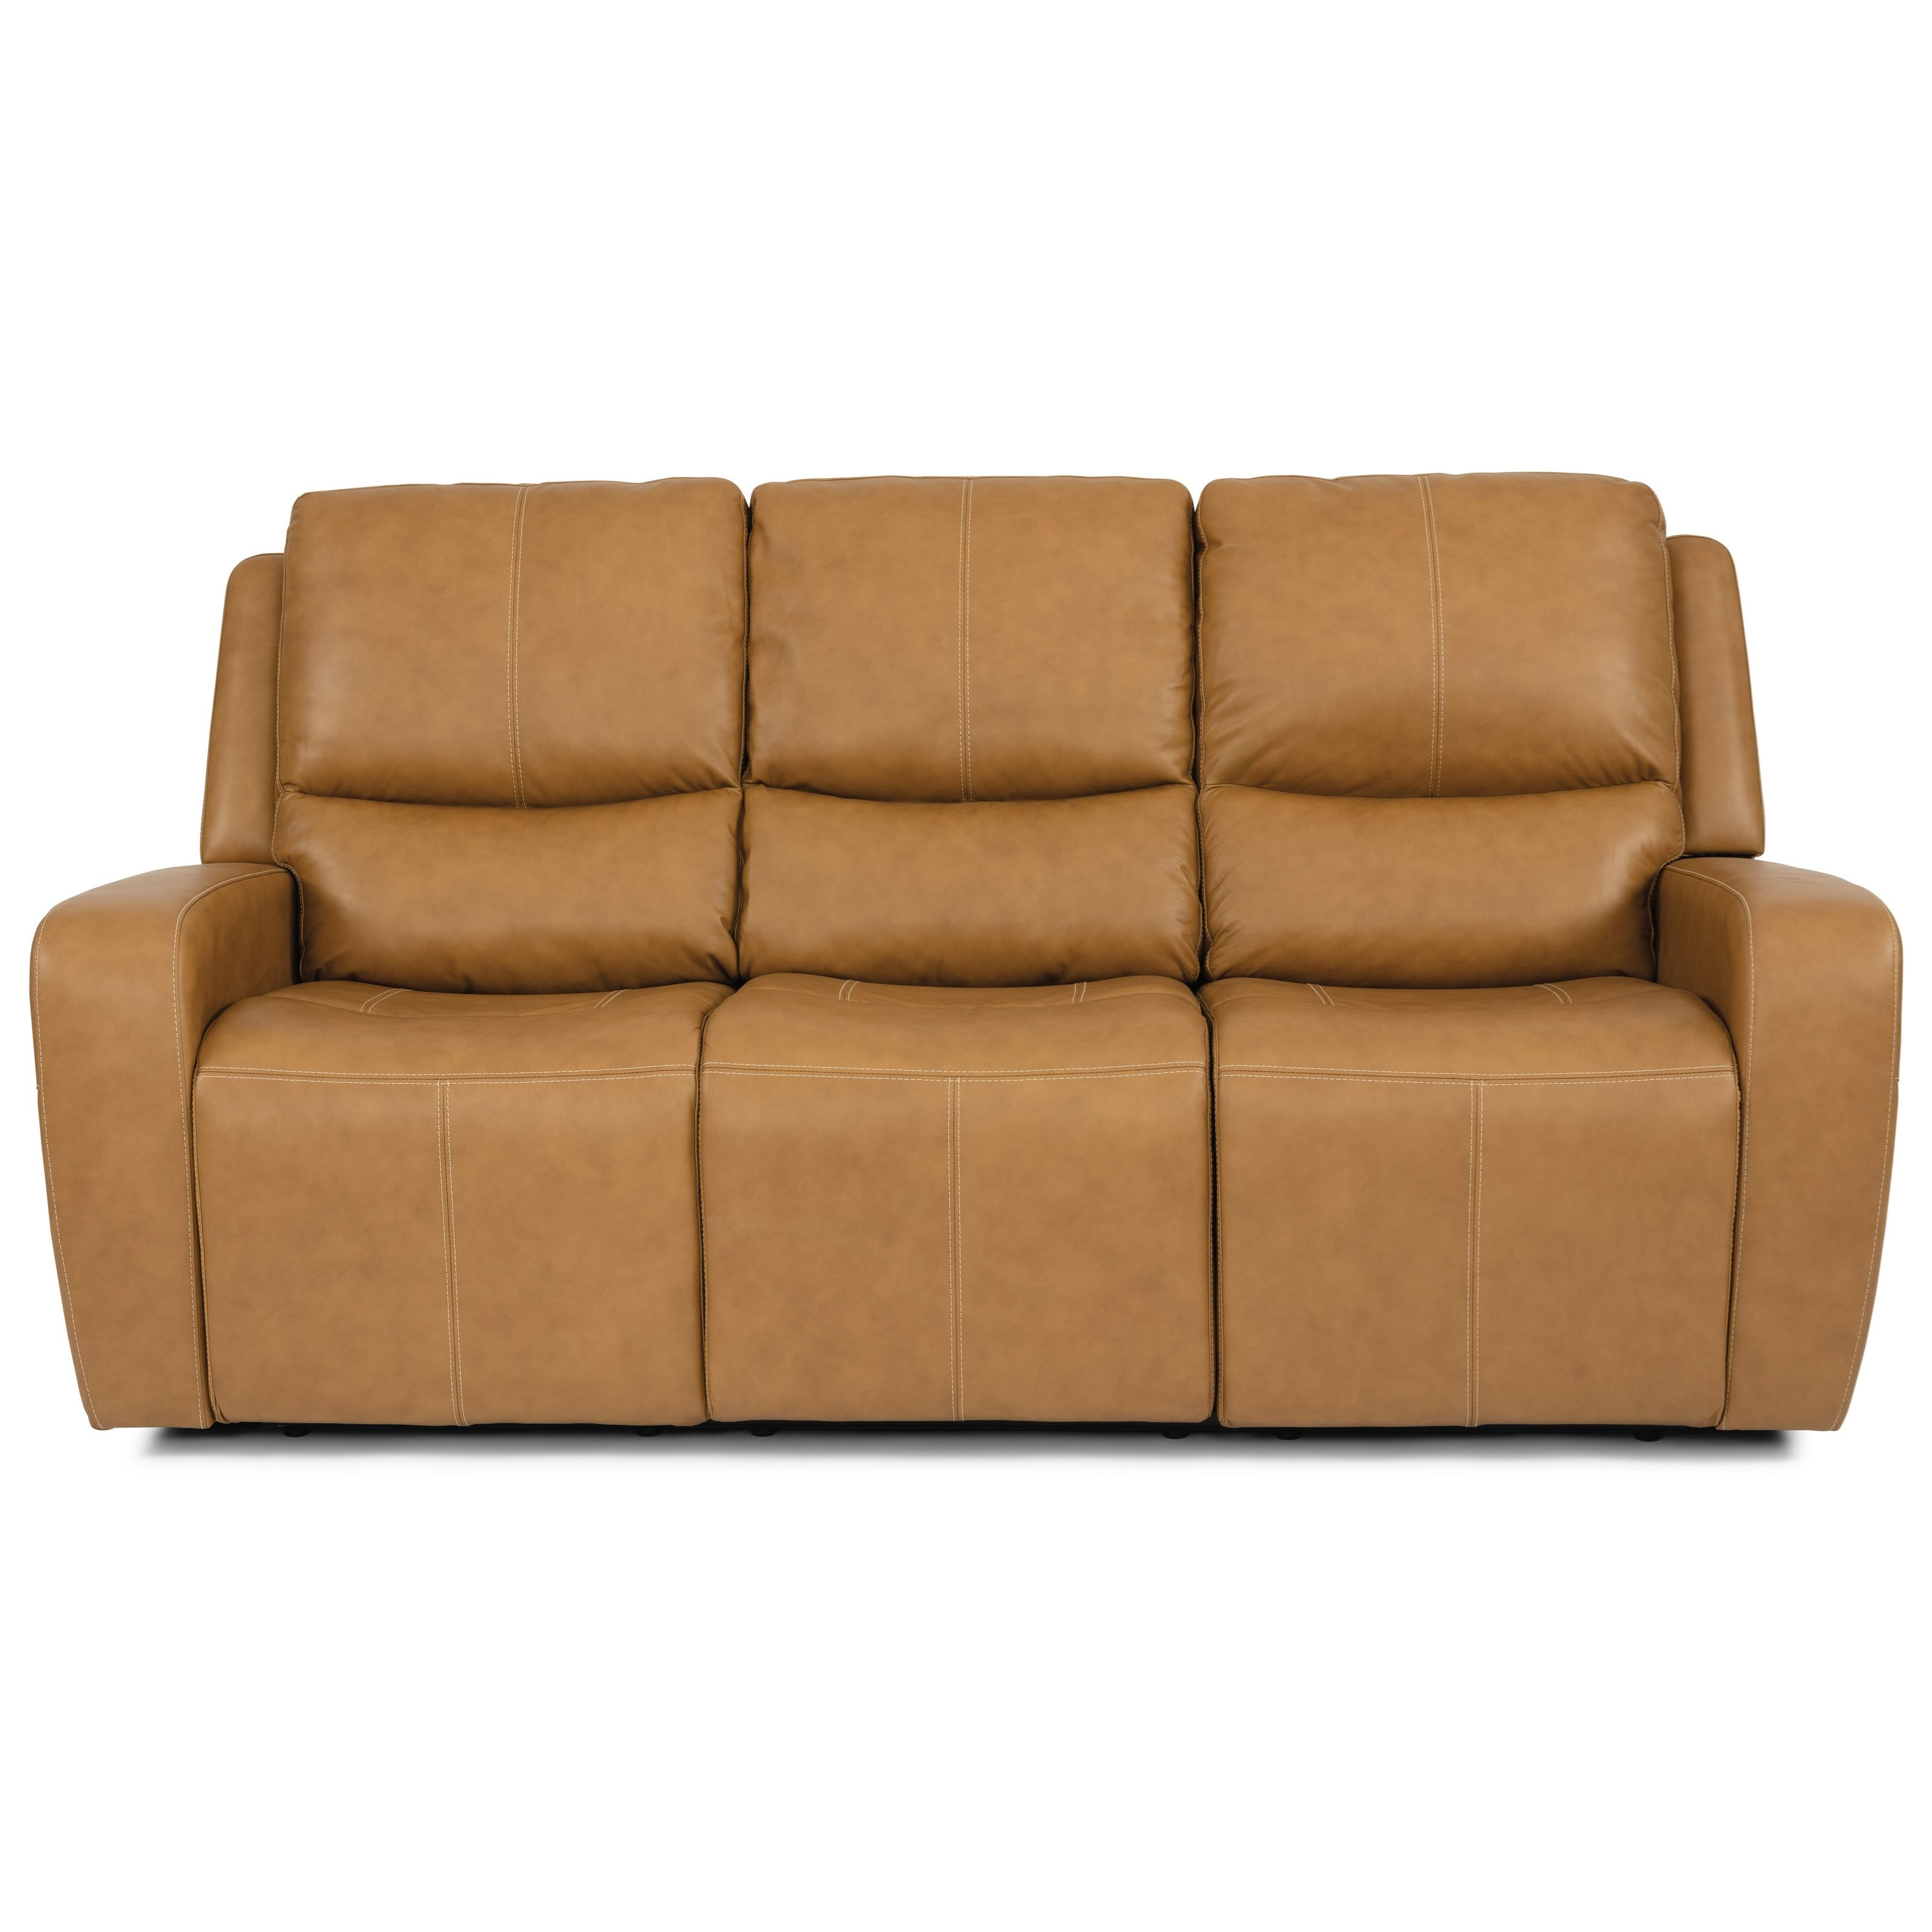 Latitudes - Aiden Power Reclining Sofa by Flexsteel at Steger's Furniture